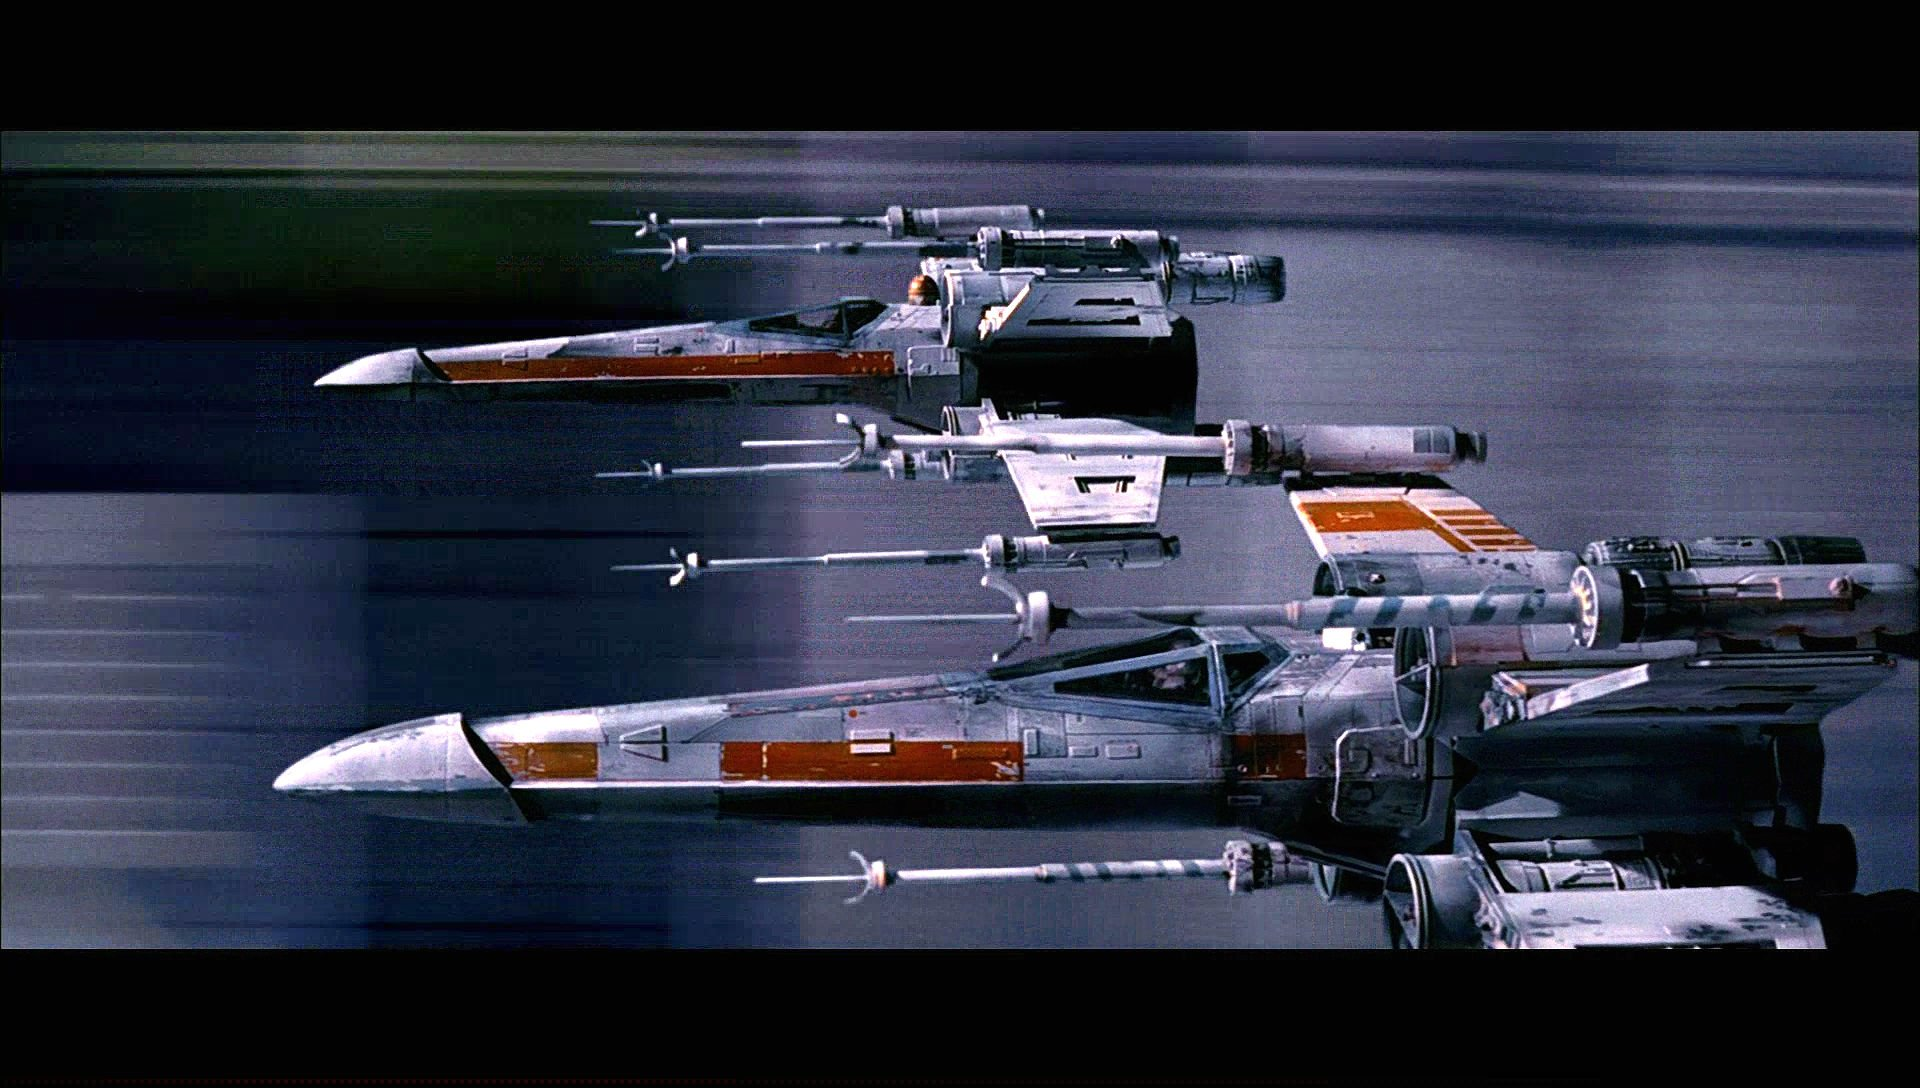 Star Wars X Wing Spaceship Futuristic Space Sci Fi Xwing Wallpaper 1920x1088 811224 Wallpaperup